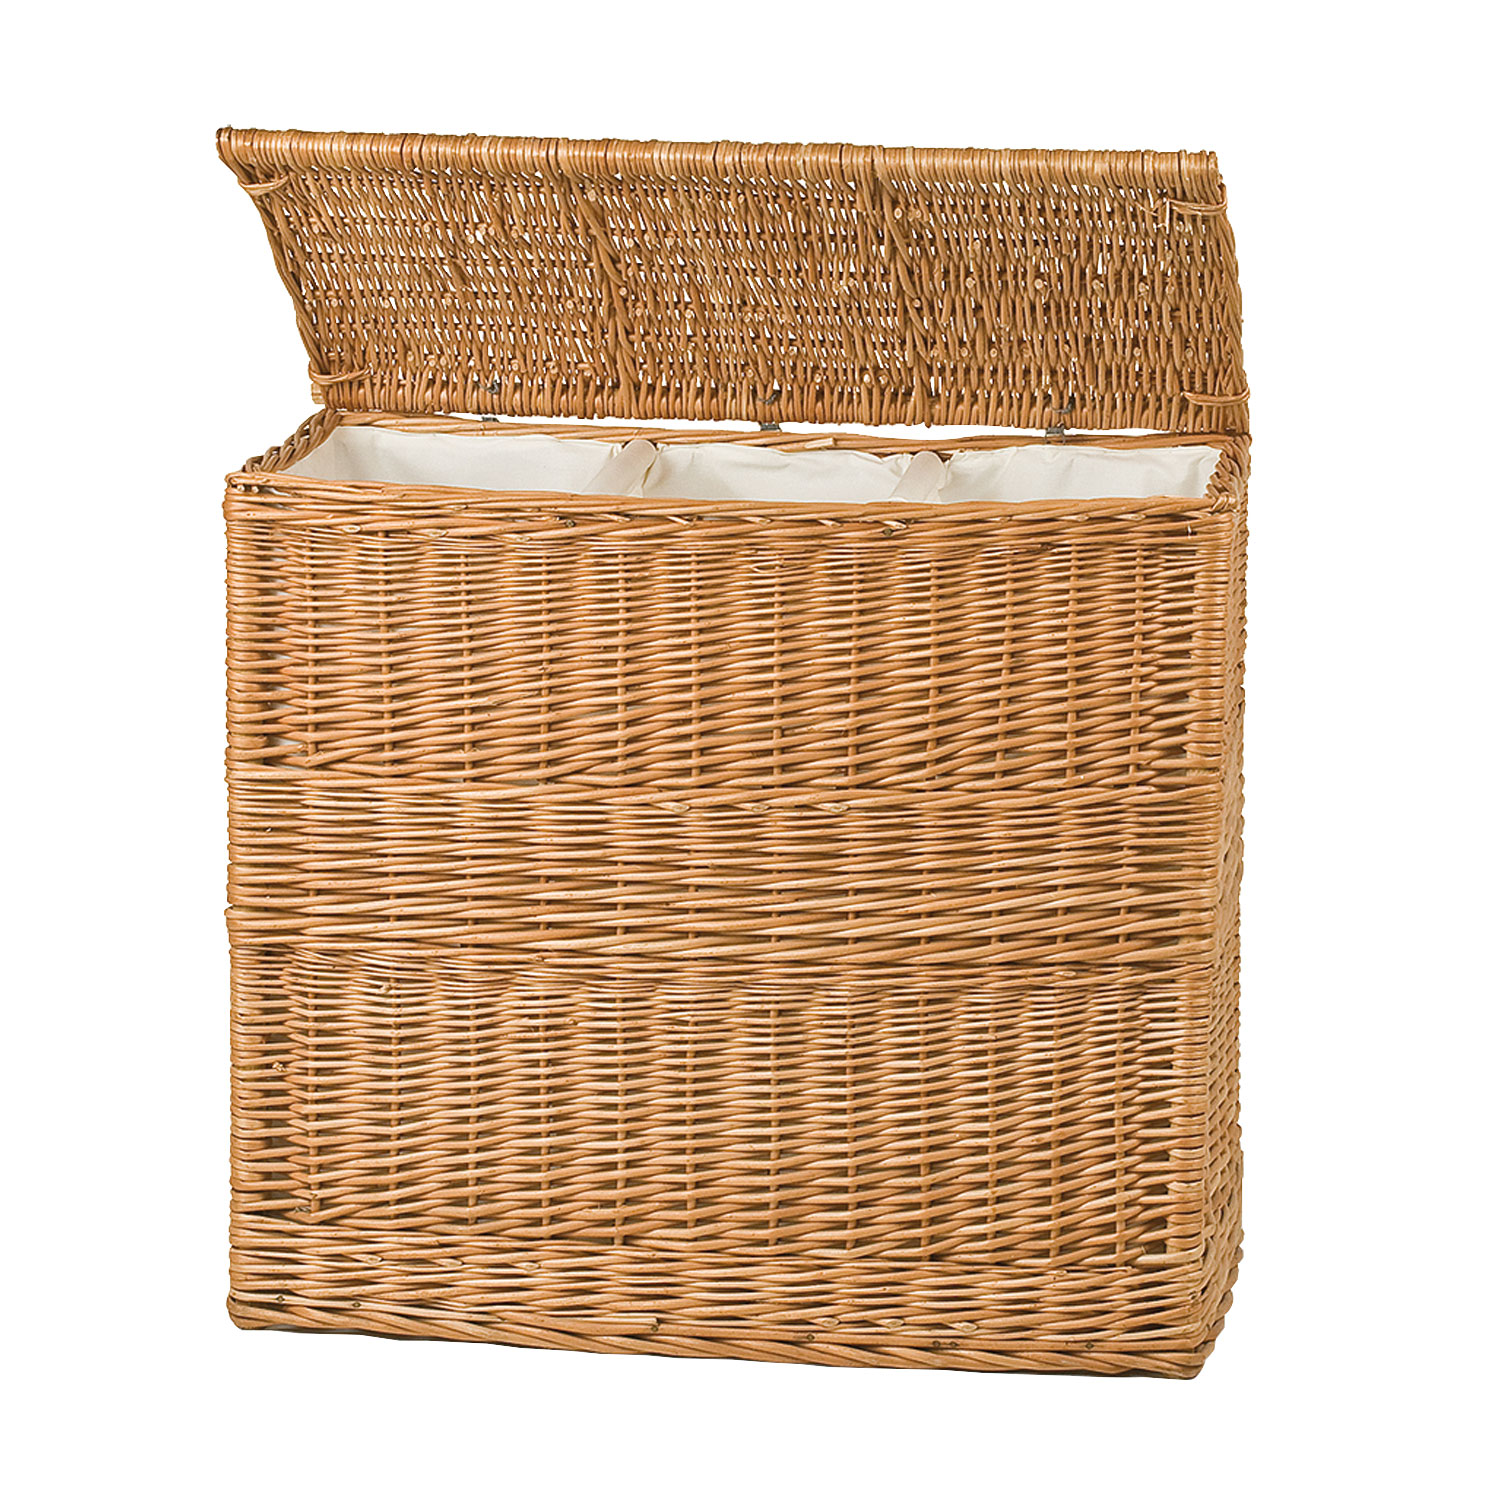 Wicker Laundry Basket with Three Compartments